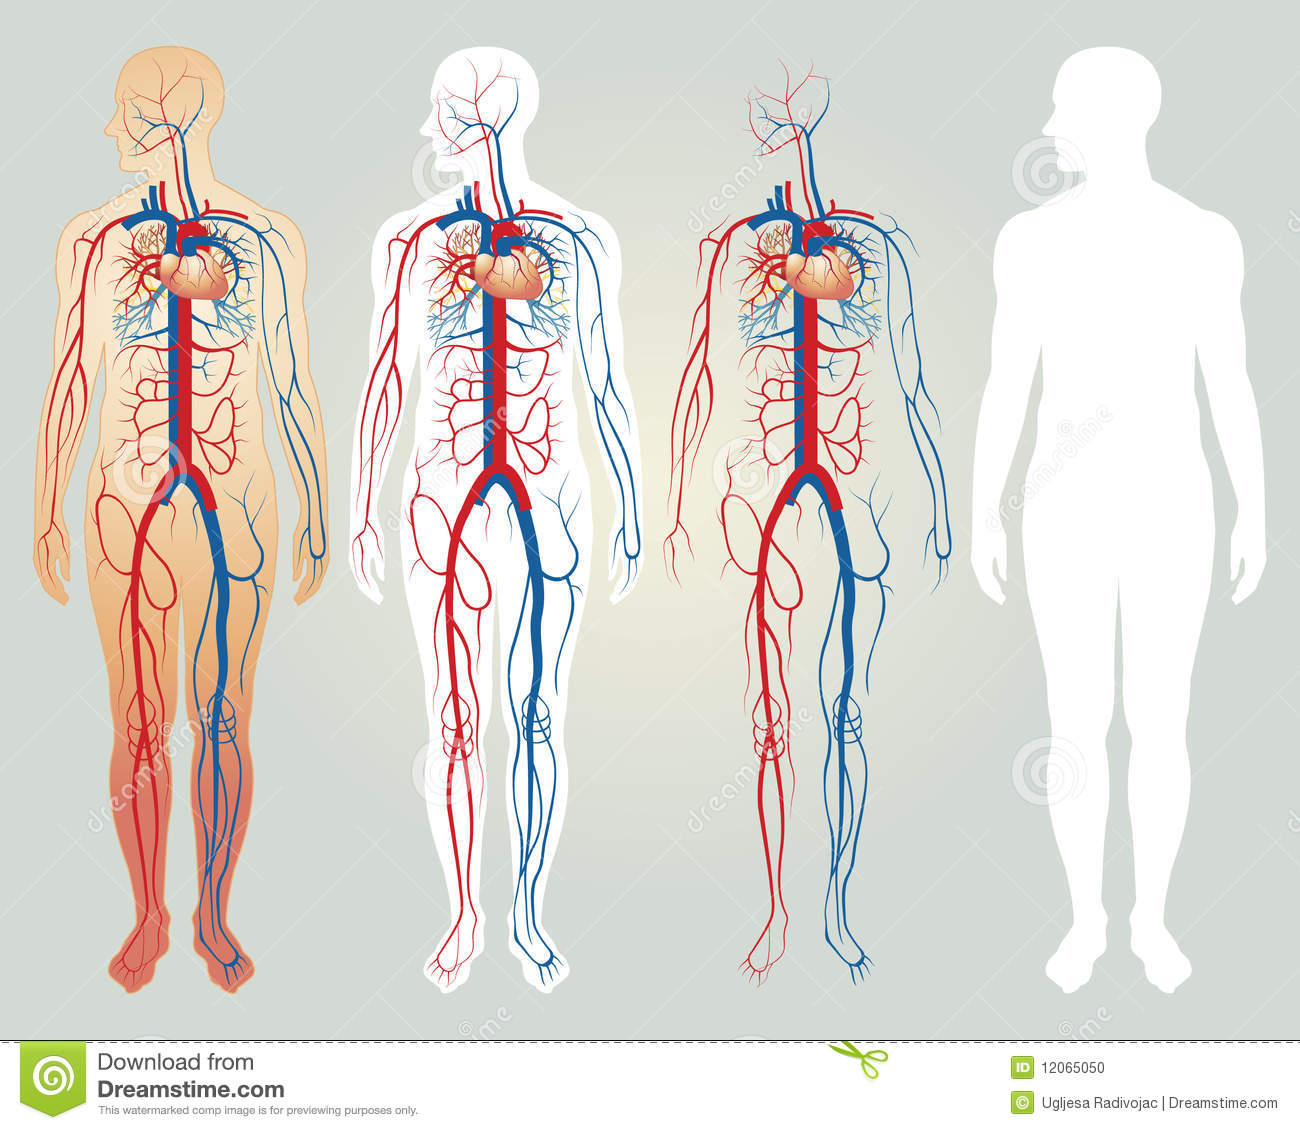 Royalty Free Stock Photos Circulatory System Easy To Edit Vector Illustration Image31172058 furthermore Dear Lungs 354018024 besides Flower Diagram Clip Art moreover Fetal Circulation Simple Diagram as well Draw a diagram of the heart. on easy to draw circulatory system